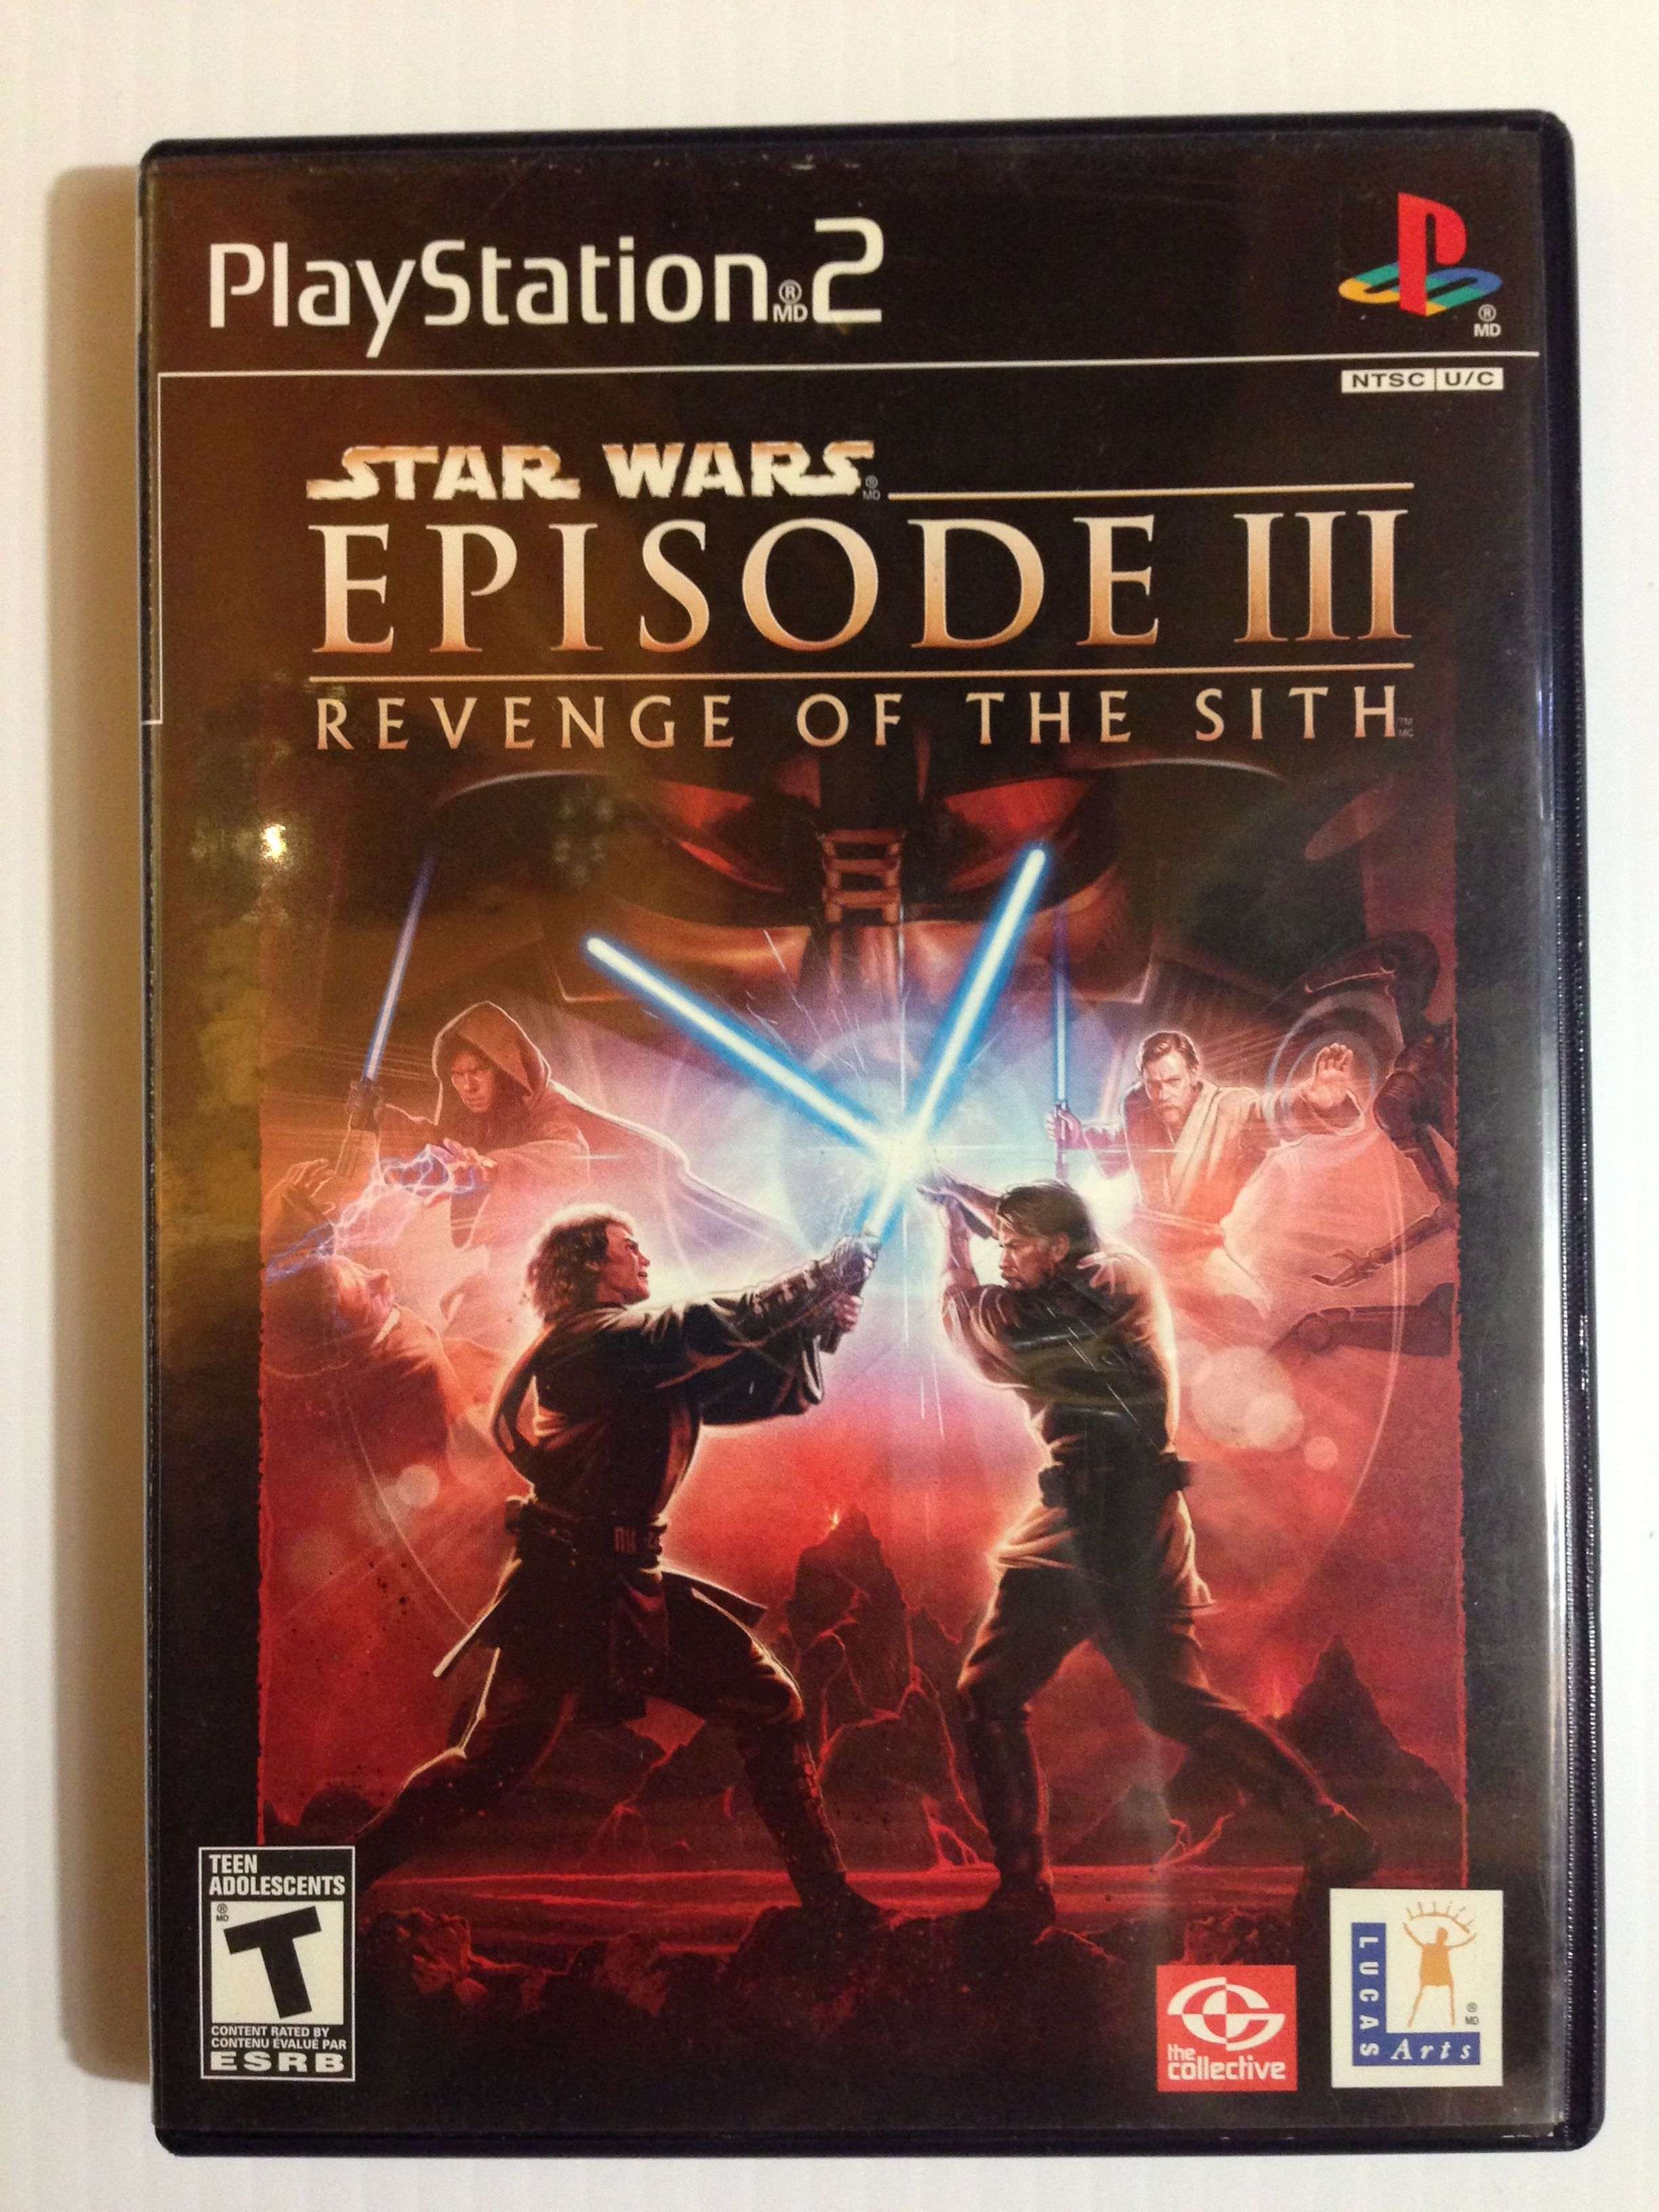 Star Wars Episode Iii Revenge Of The Sith With Images Star